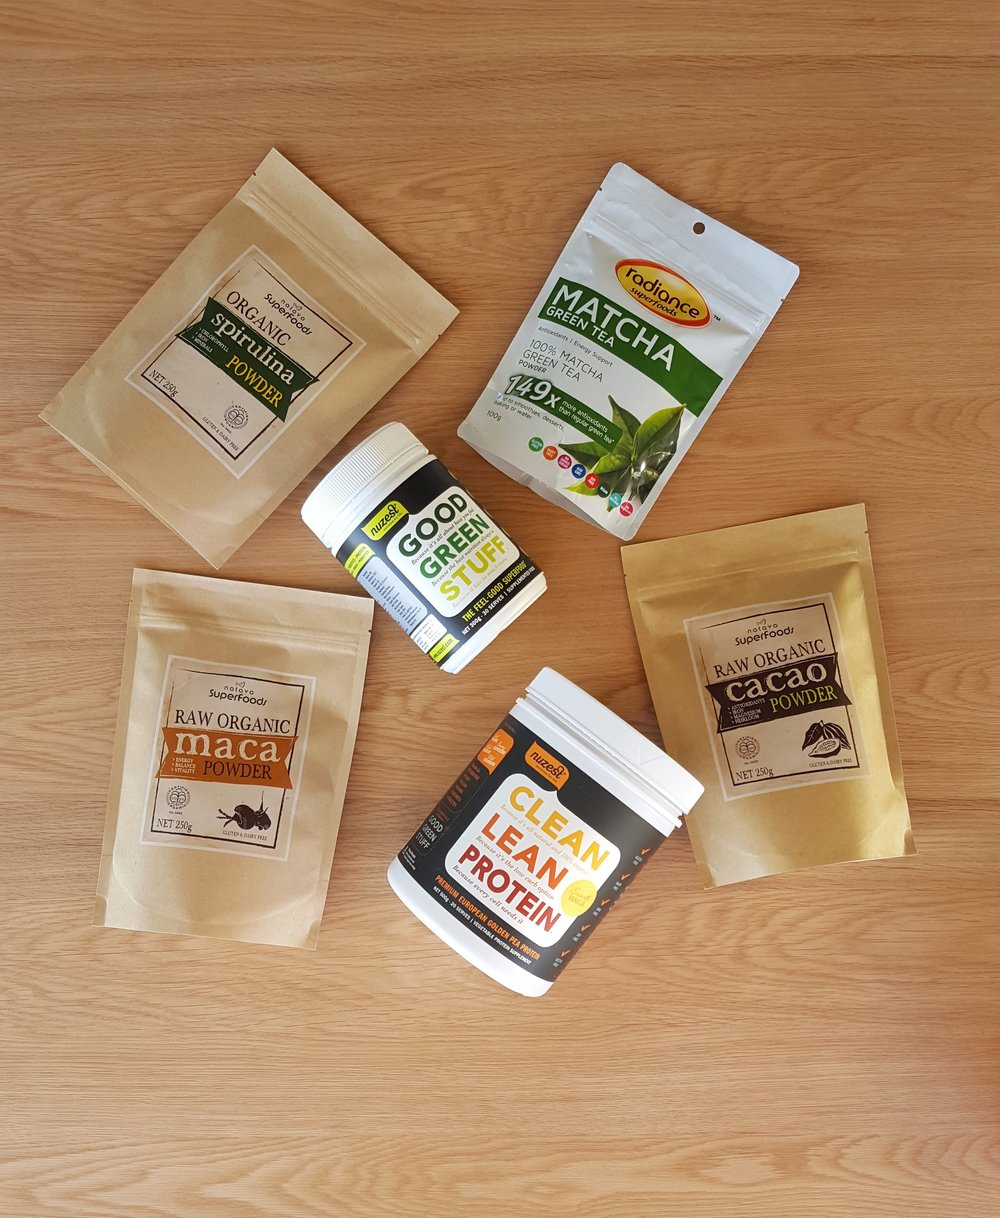 My Top 6 Superfood Powders - Natalie Brady